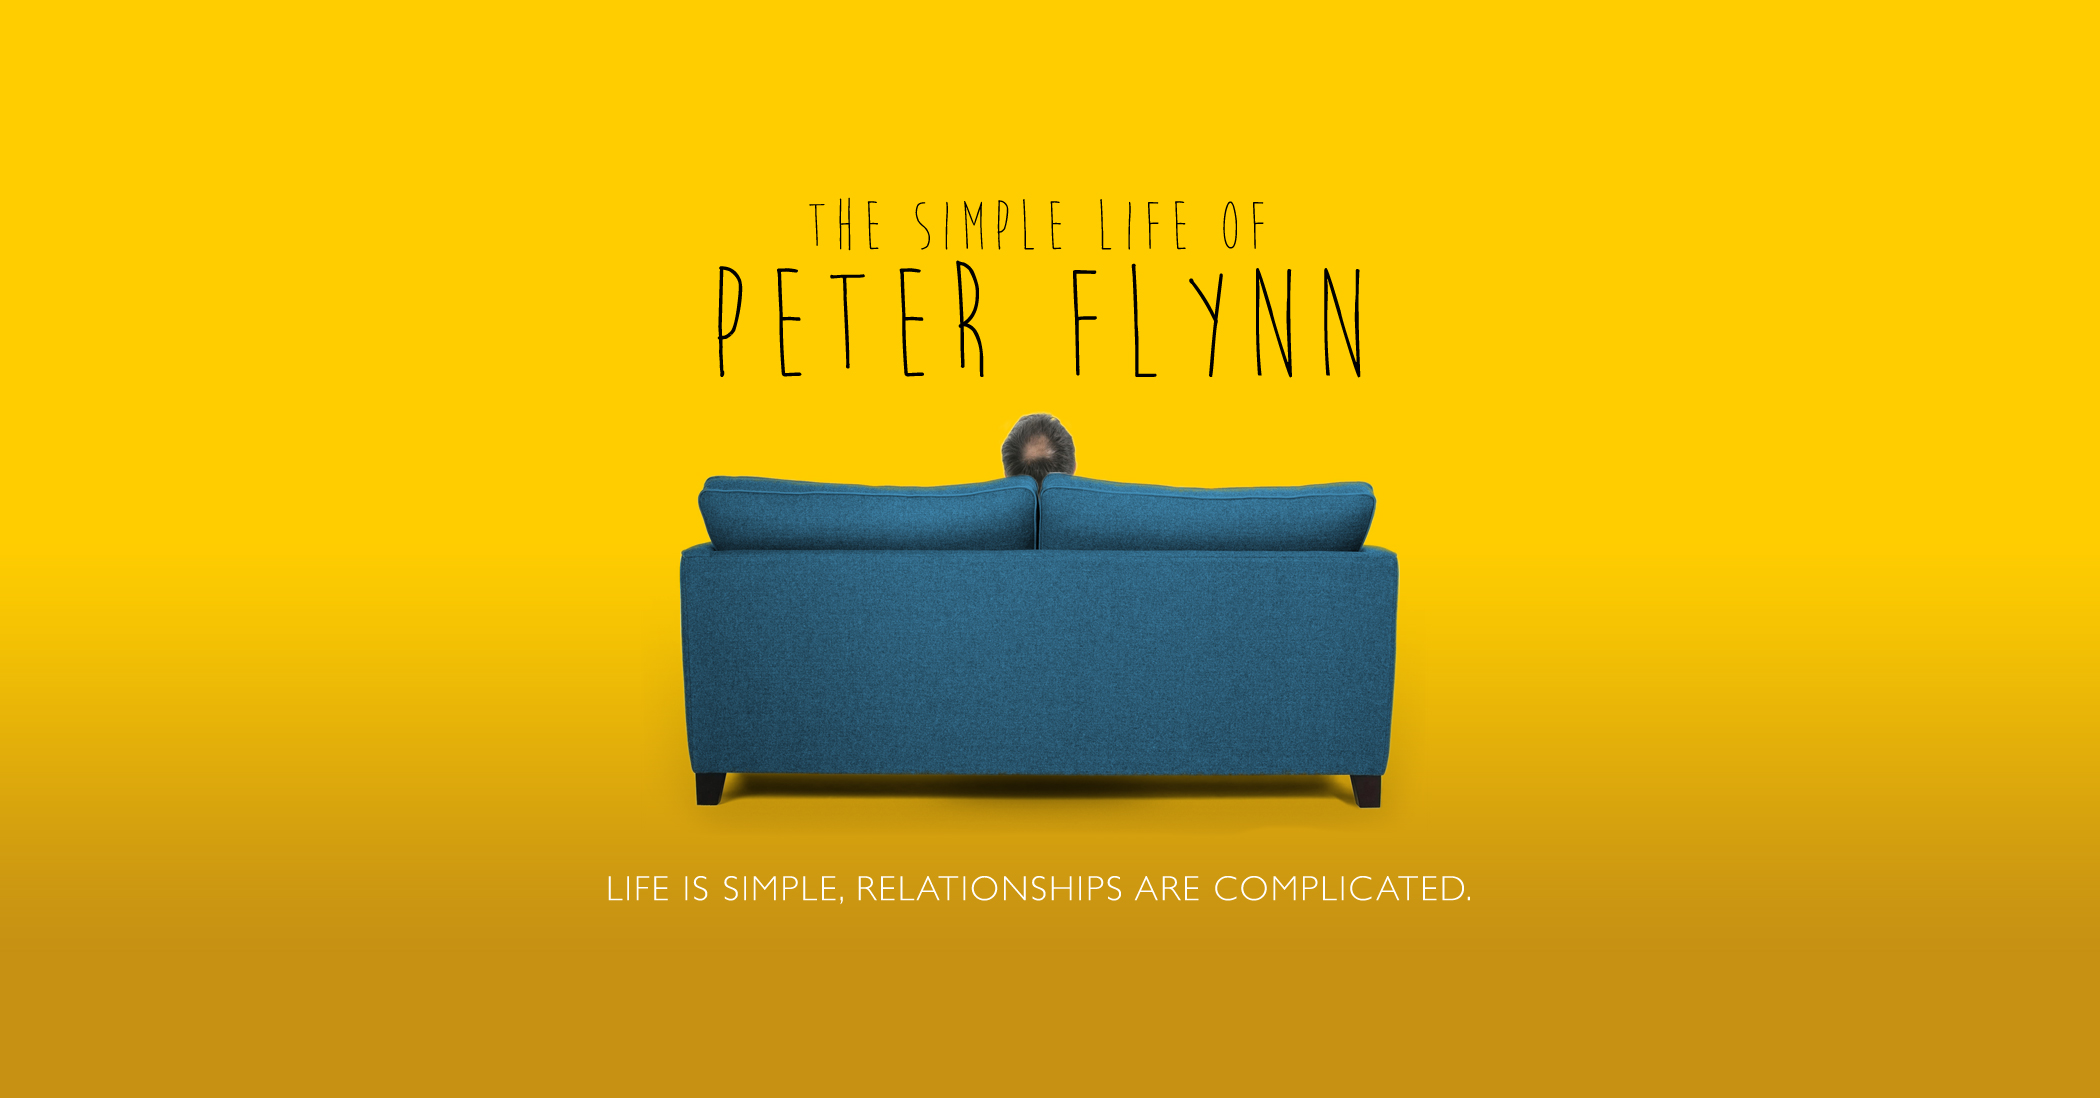 The Simple Life of Peter Flynn